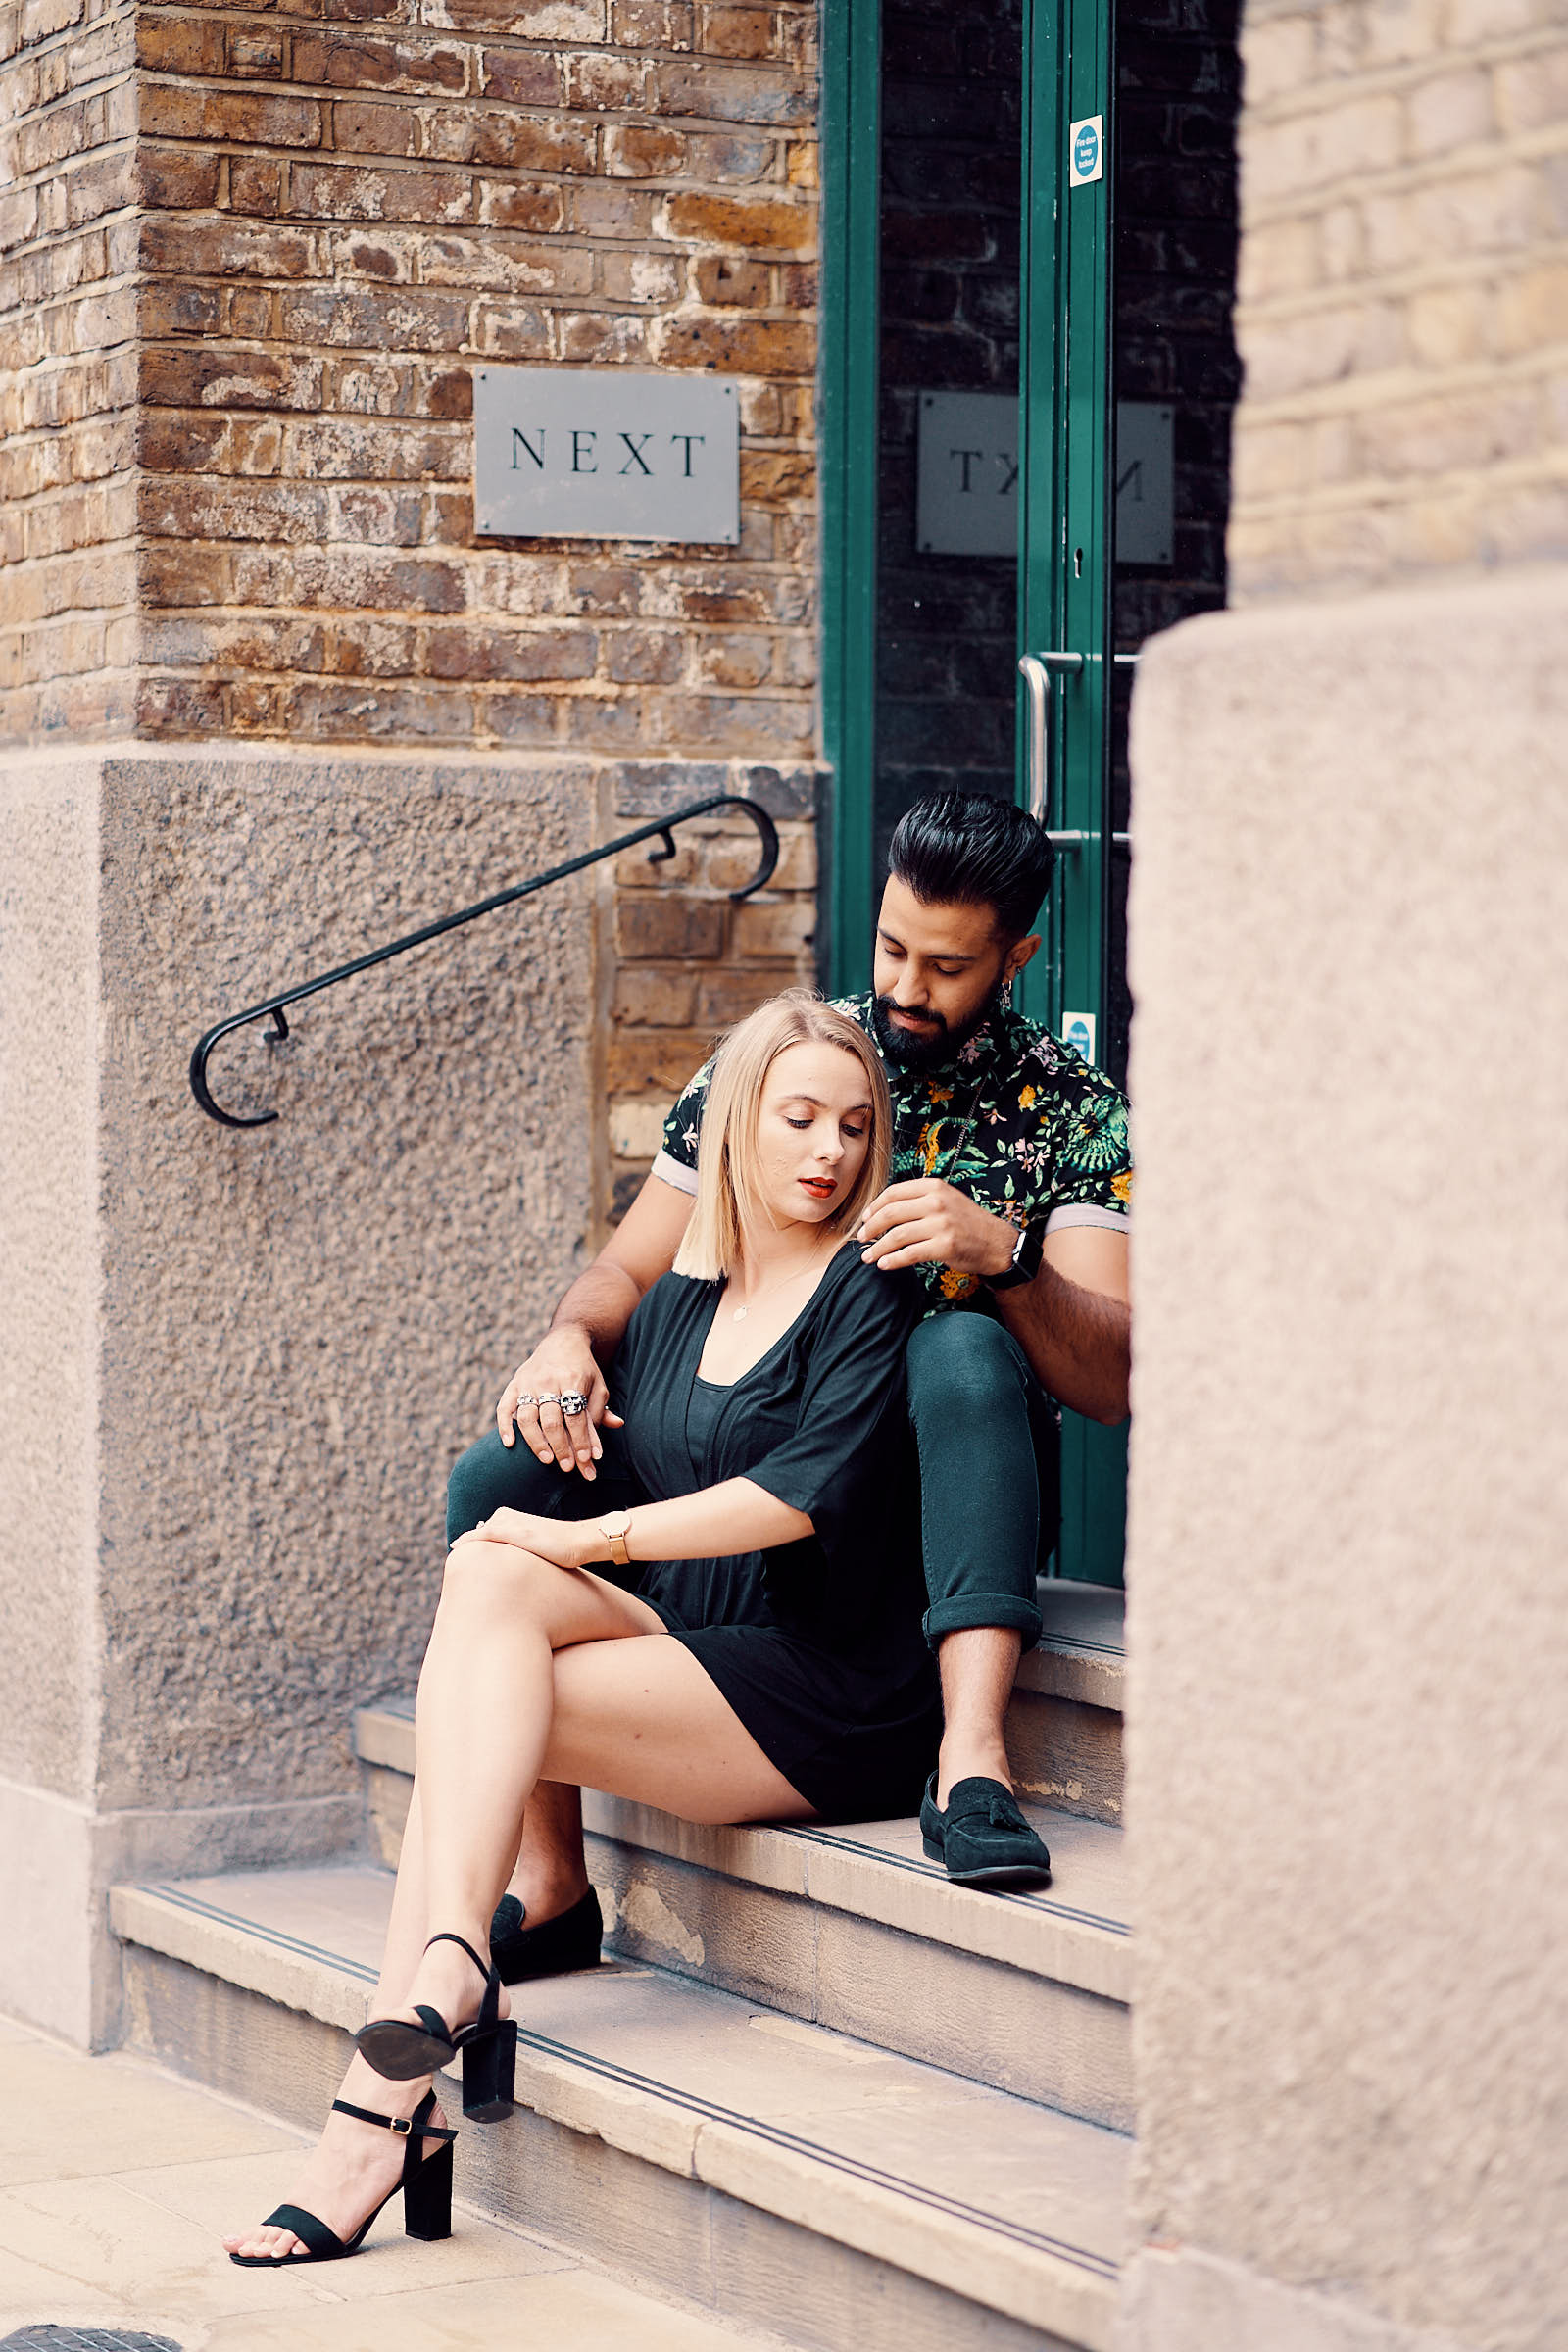 London Editorial Style Engagement Shoot By Afewgoodclicks